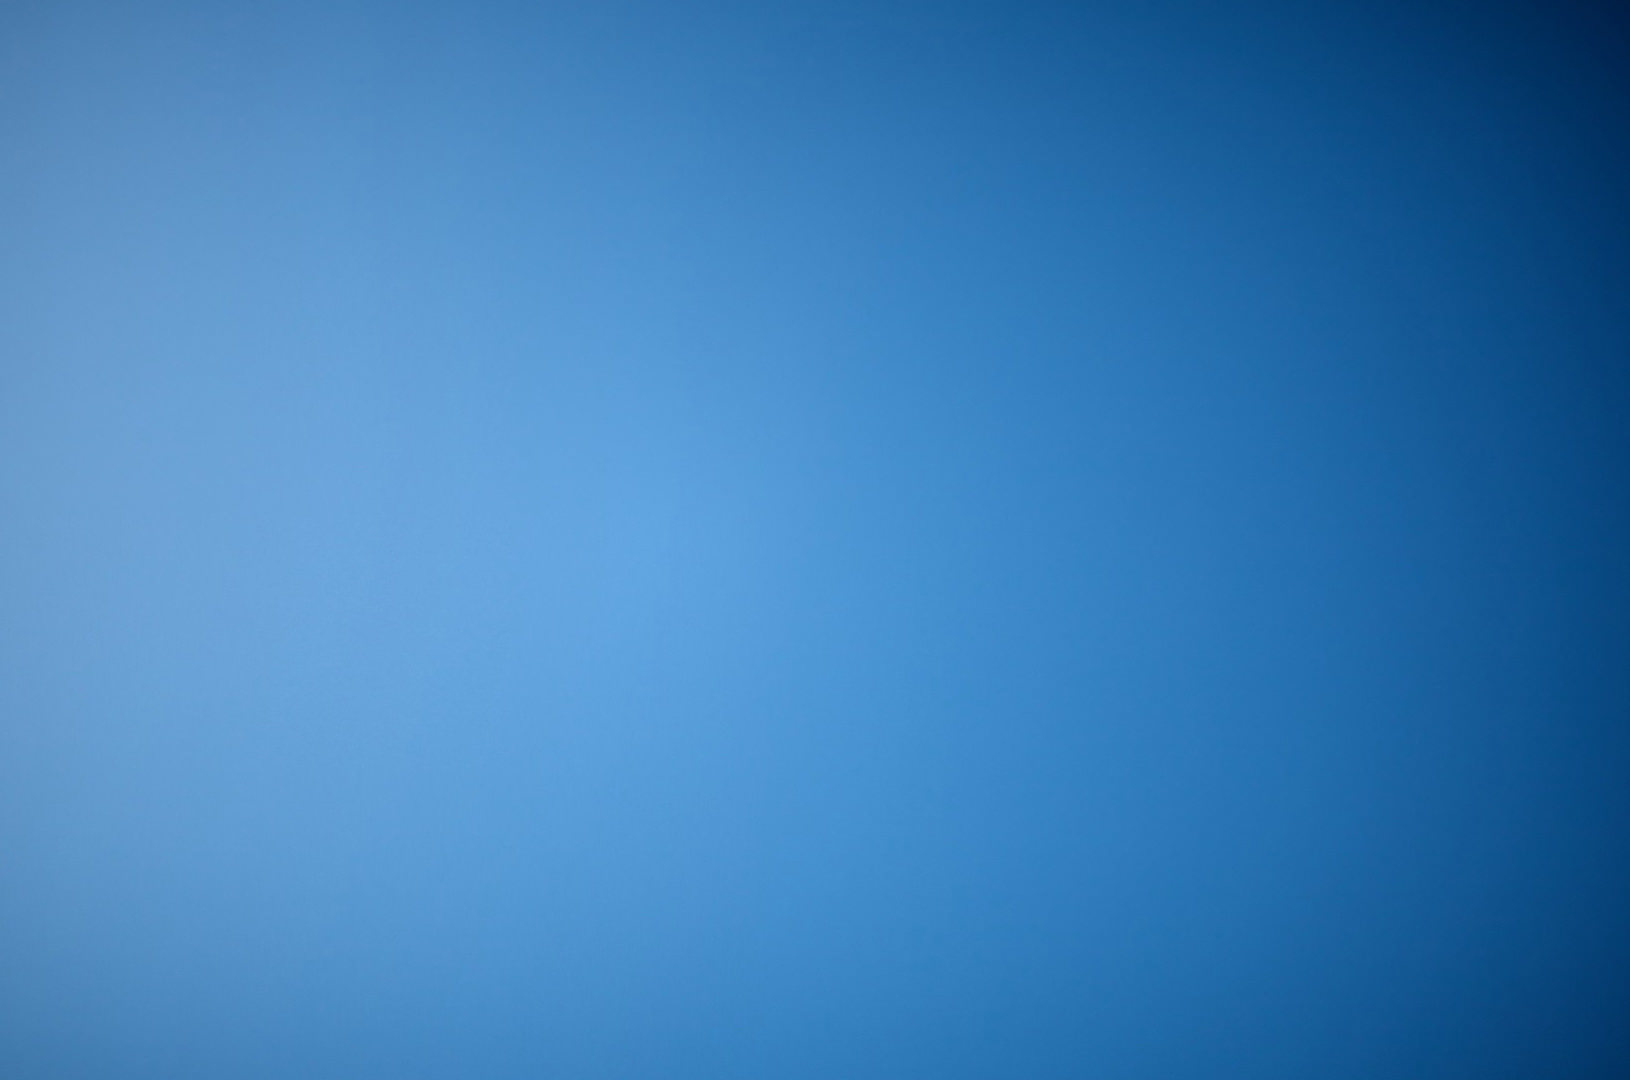 Blue Gradient Background For Free Download